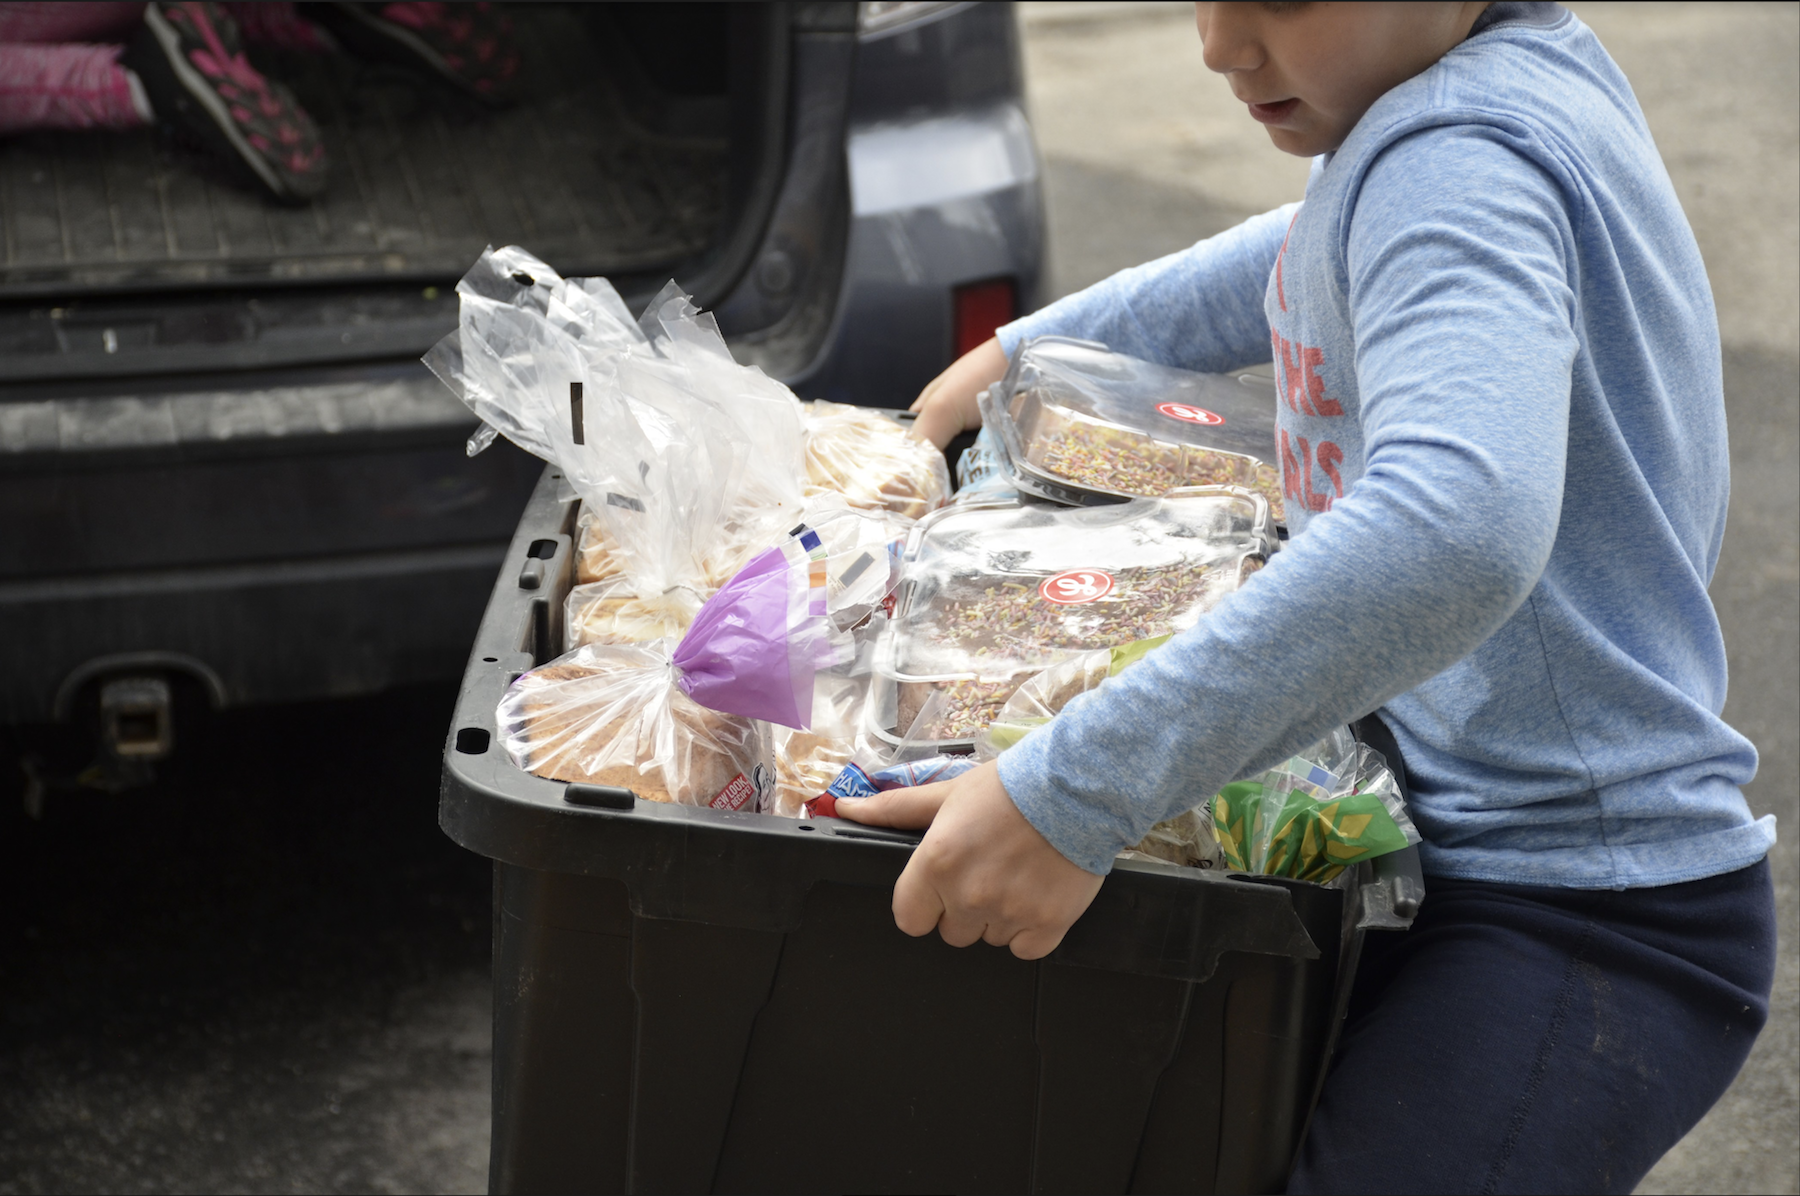 Our Volunteers - Hole Food Rescue is sustained by volunteers.Our organization is powered by people, and we work hard to recruit, train, manage, and celebrate the efforts of our amazing volunteers.Volunteers pick up donated food from food donors, bring it to our food sorting facility (